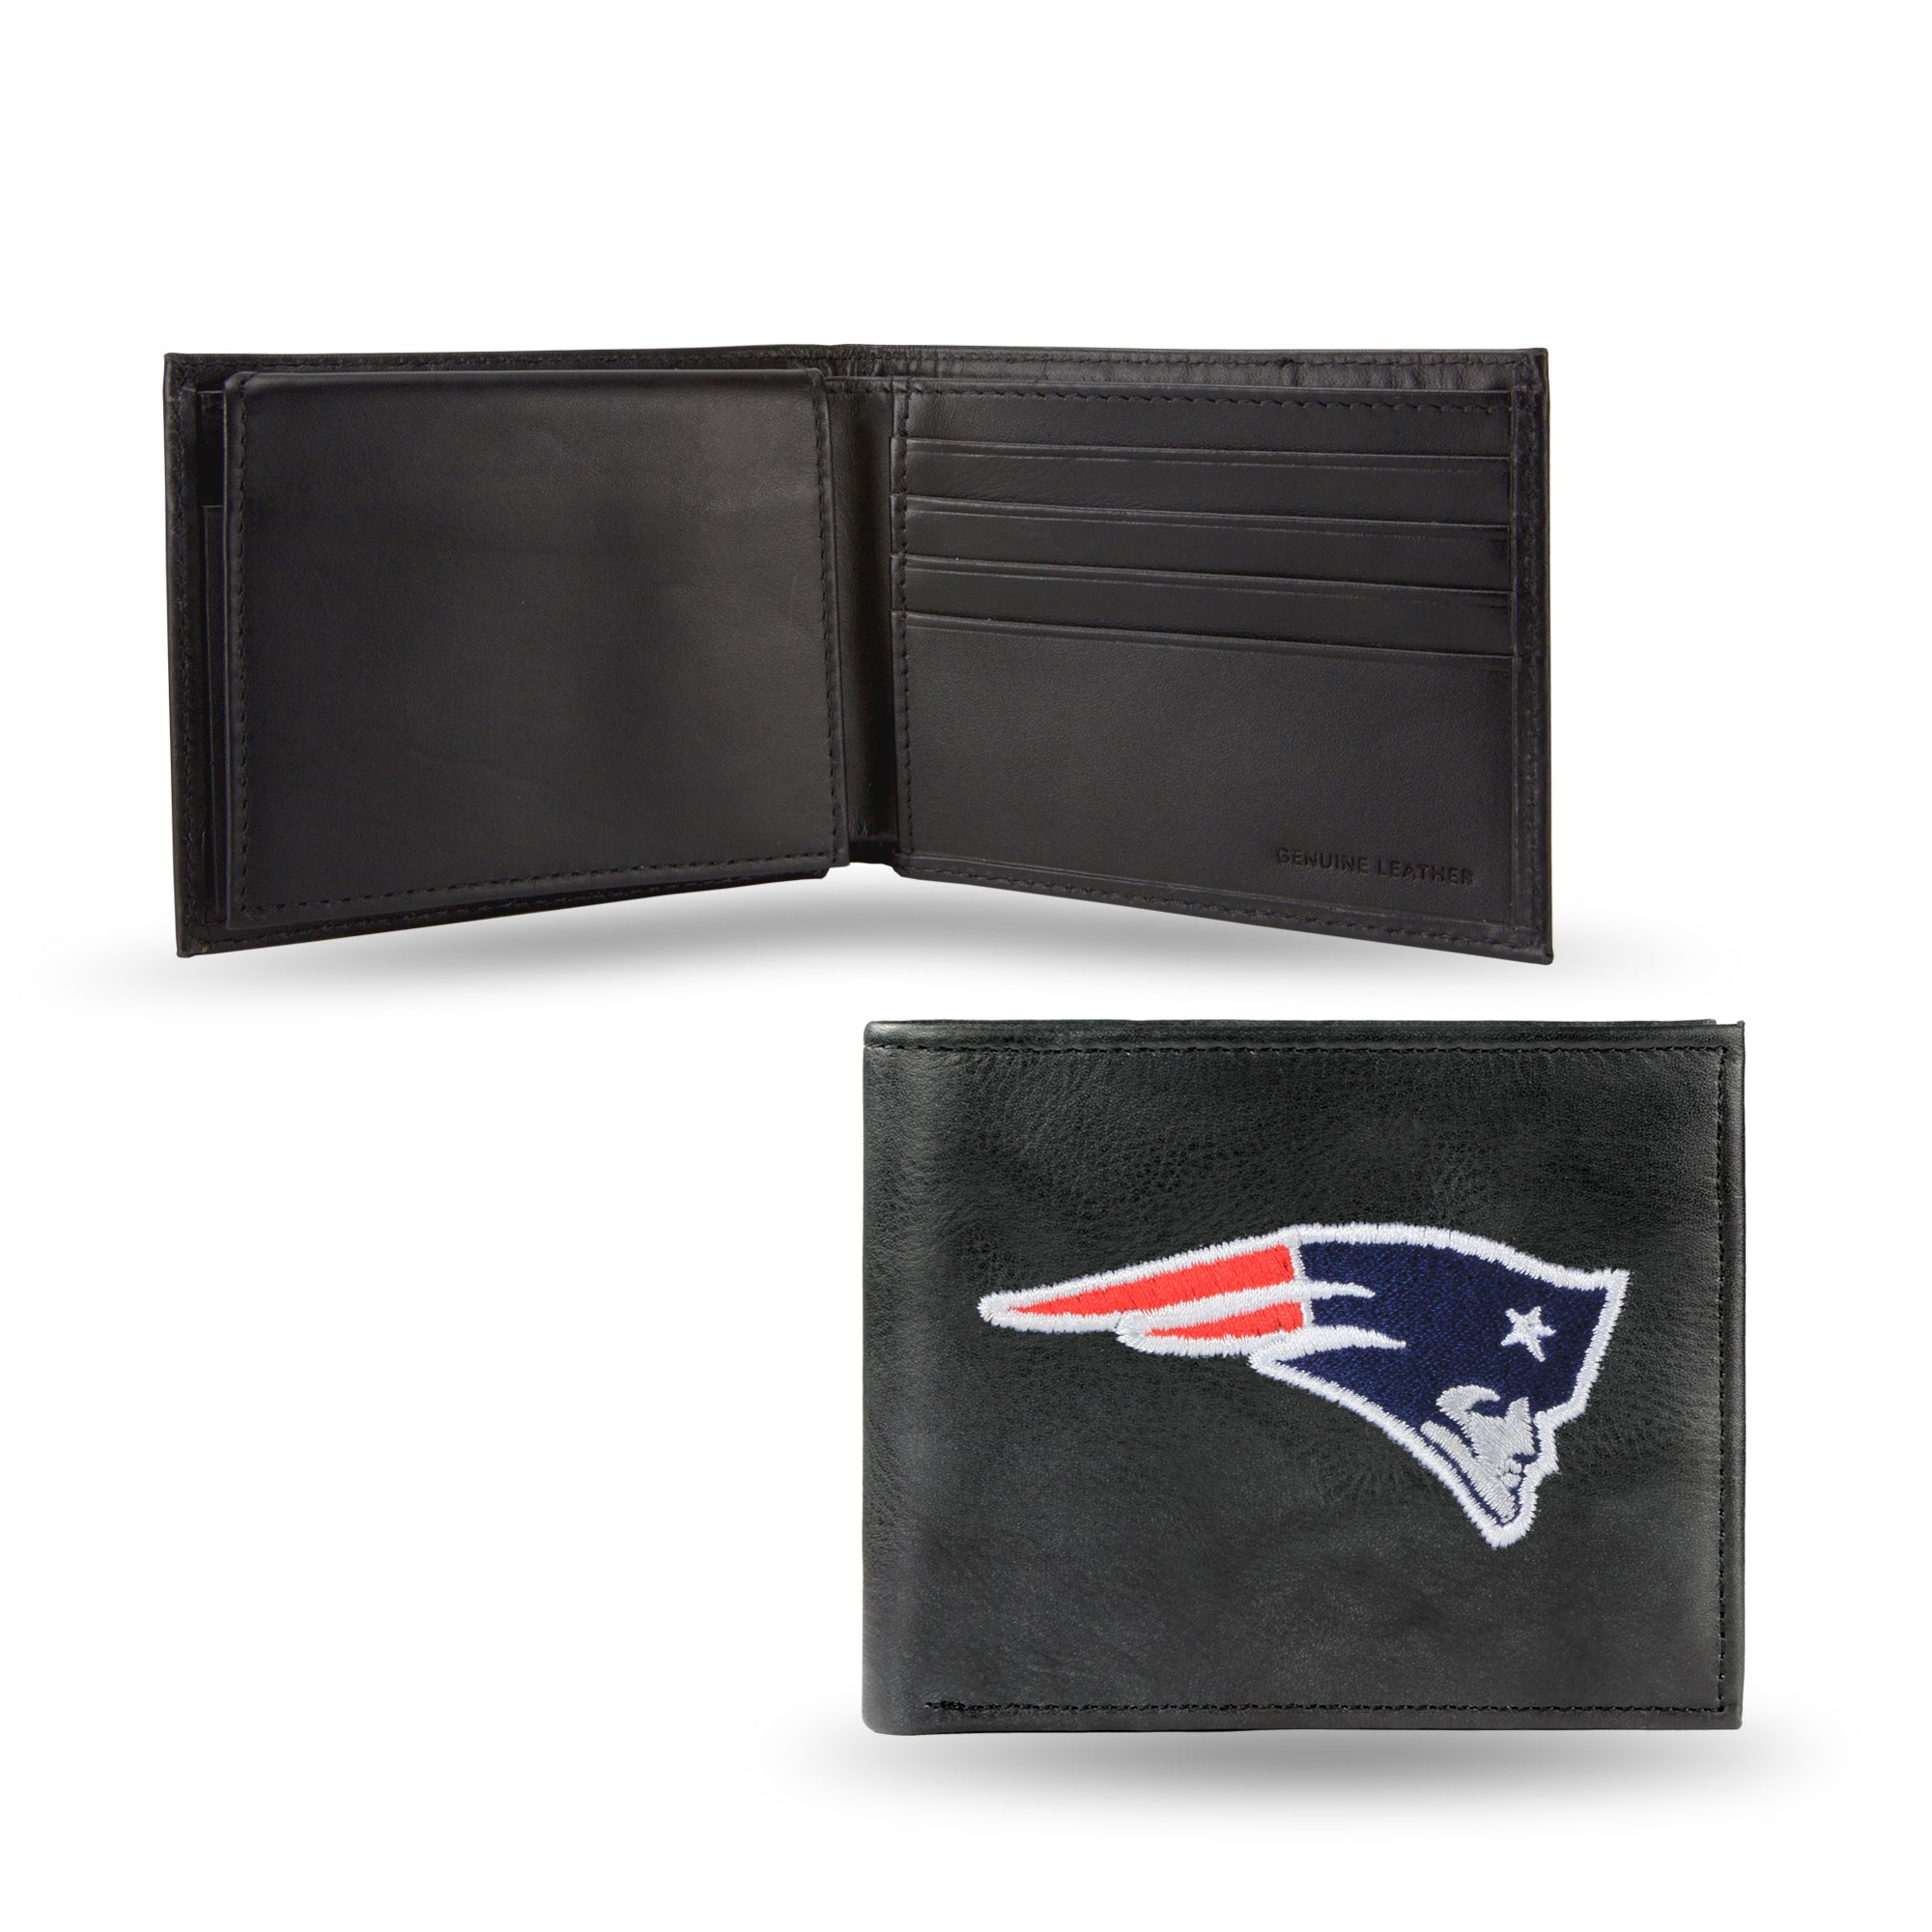 NFL New England Patriots Embroidered Billfold / Wallet